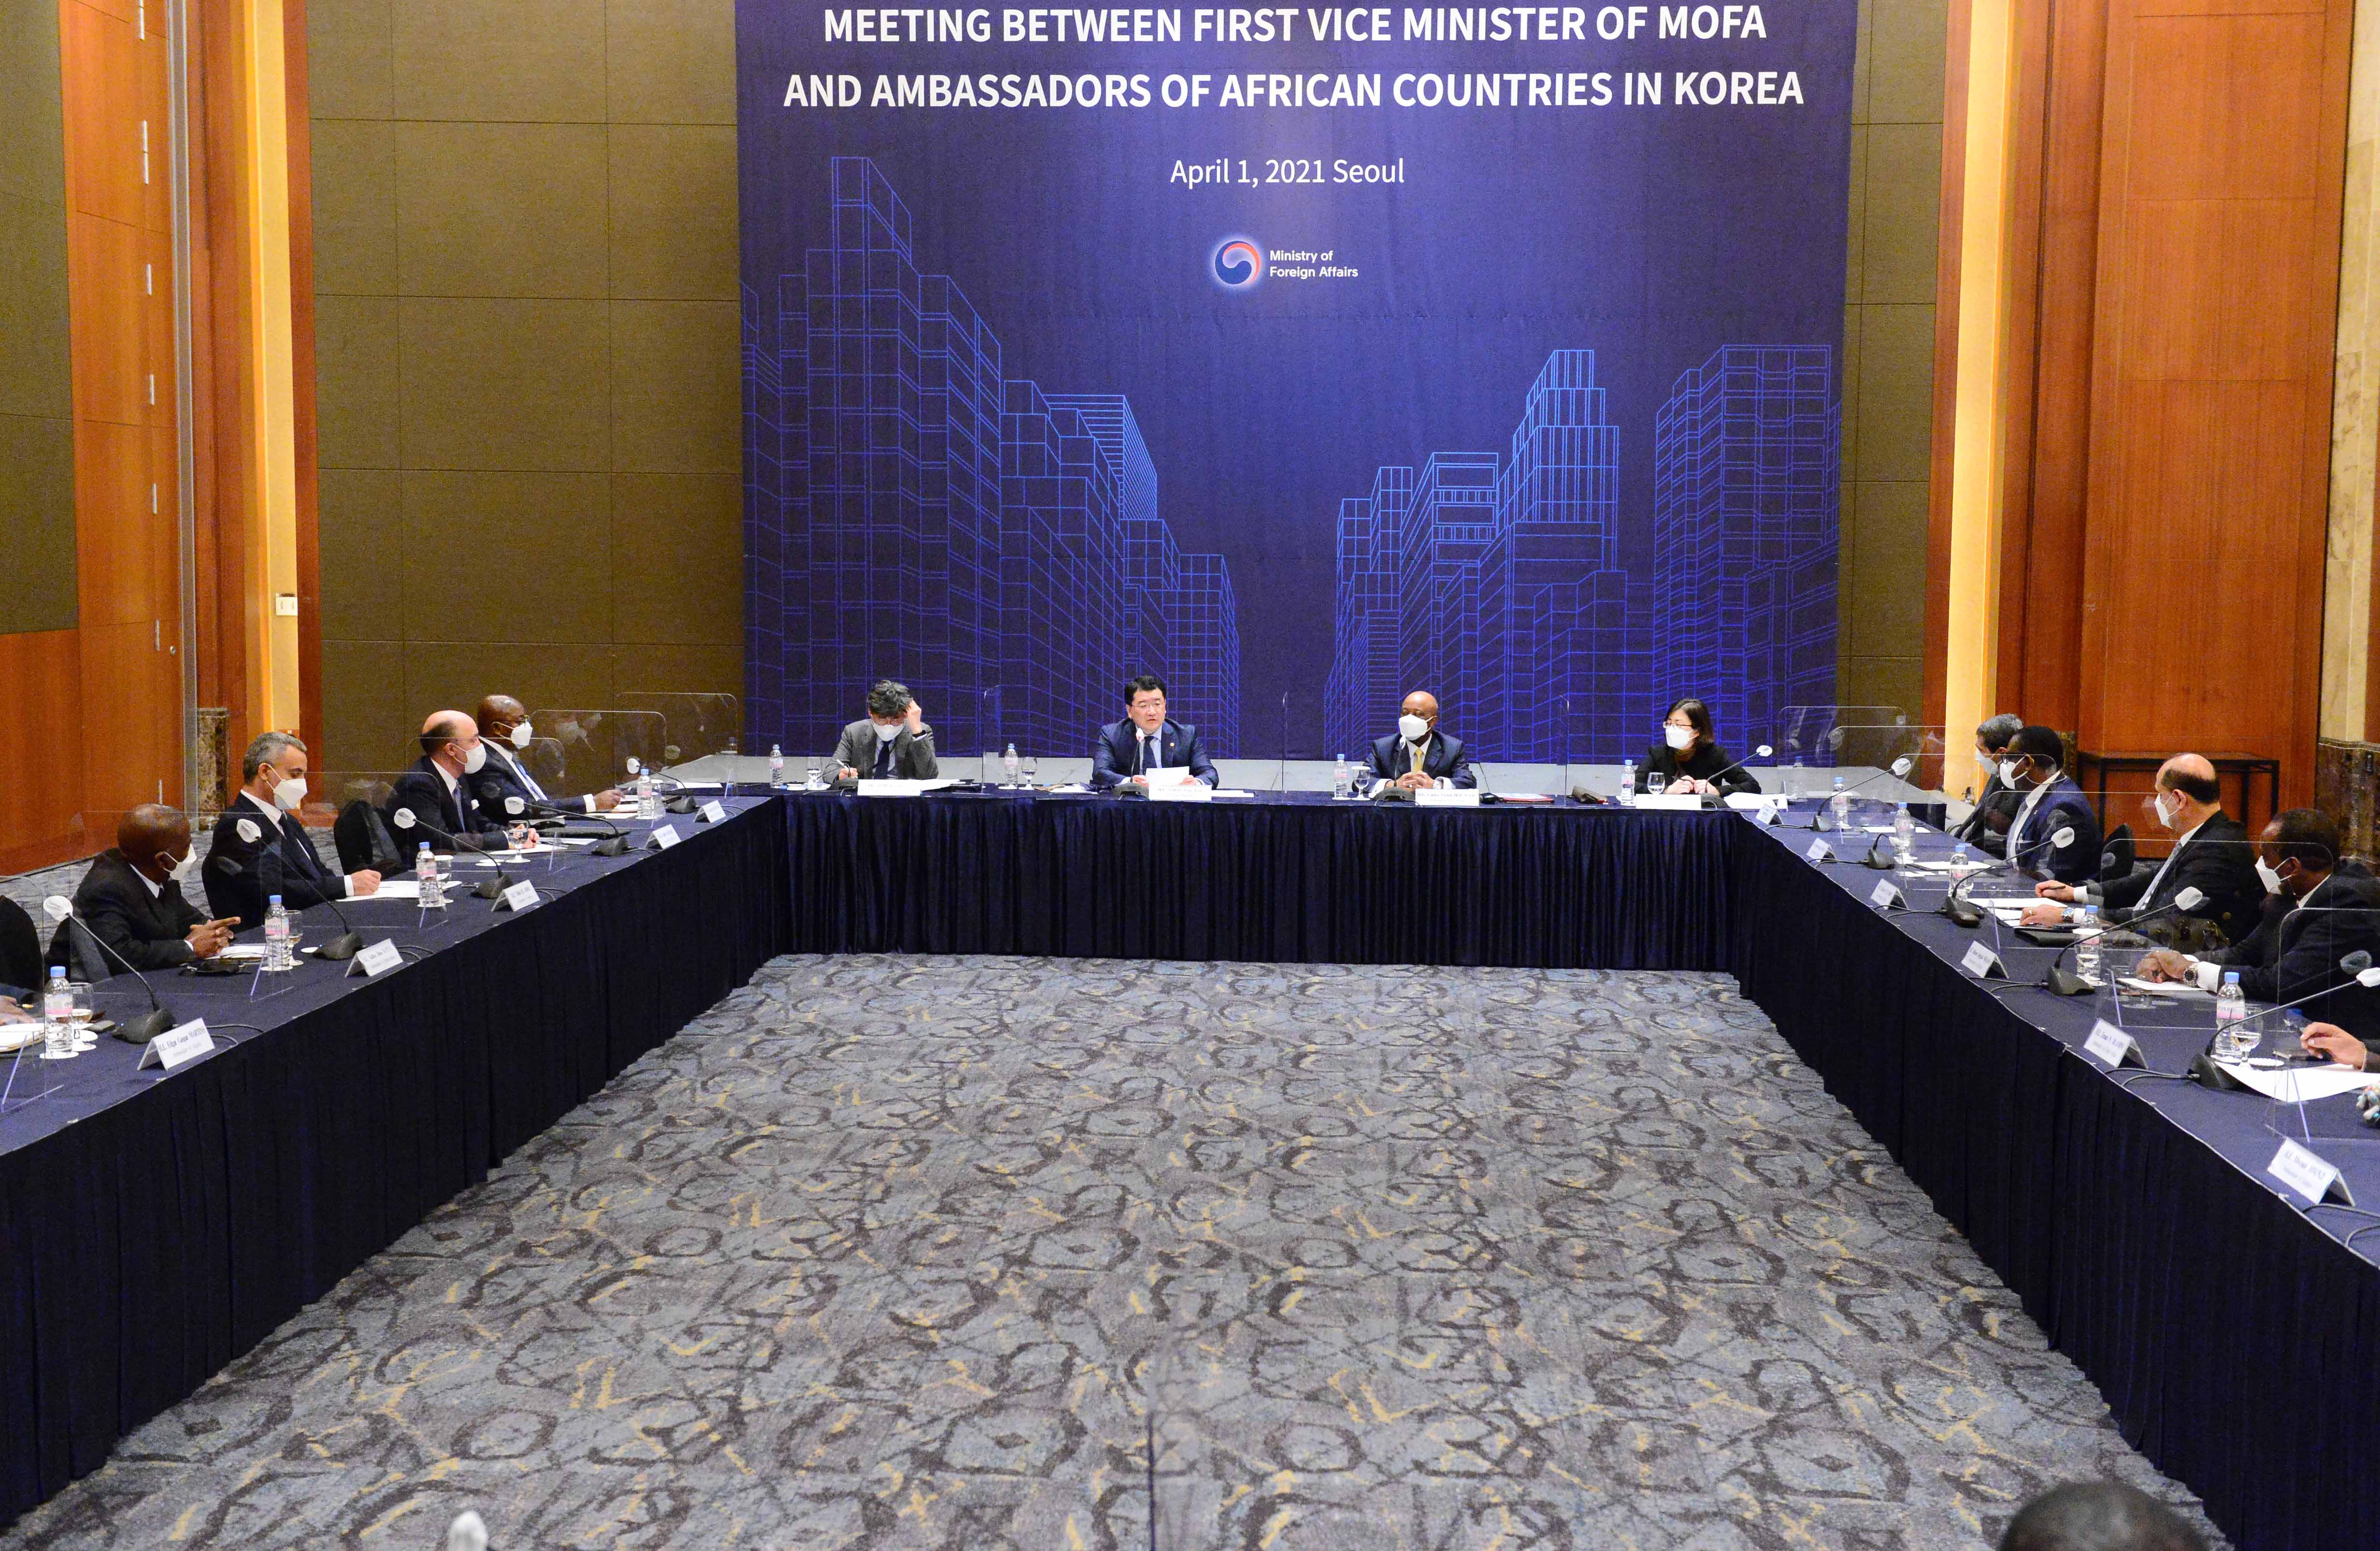 Vice Minister of Foreign Affairs Choi Jong Kun Holds Meeting with Ambassadors of African Countries to Korea